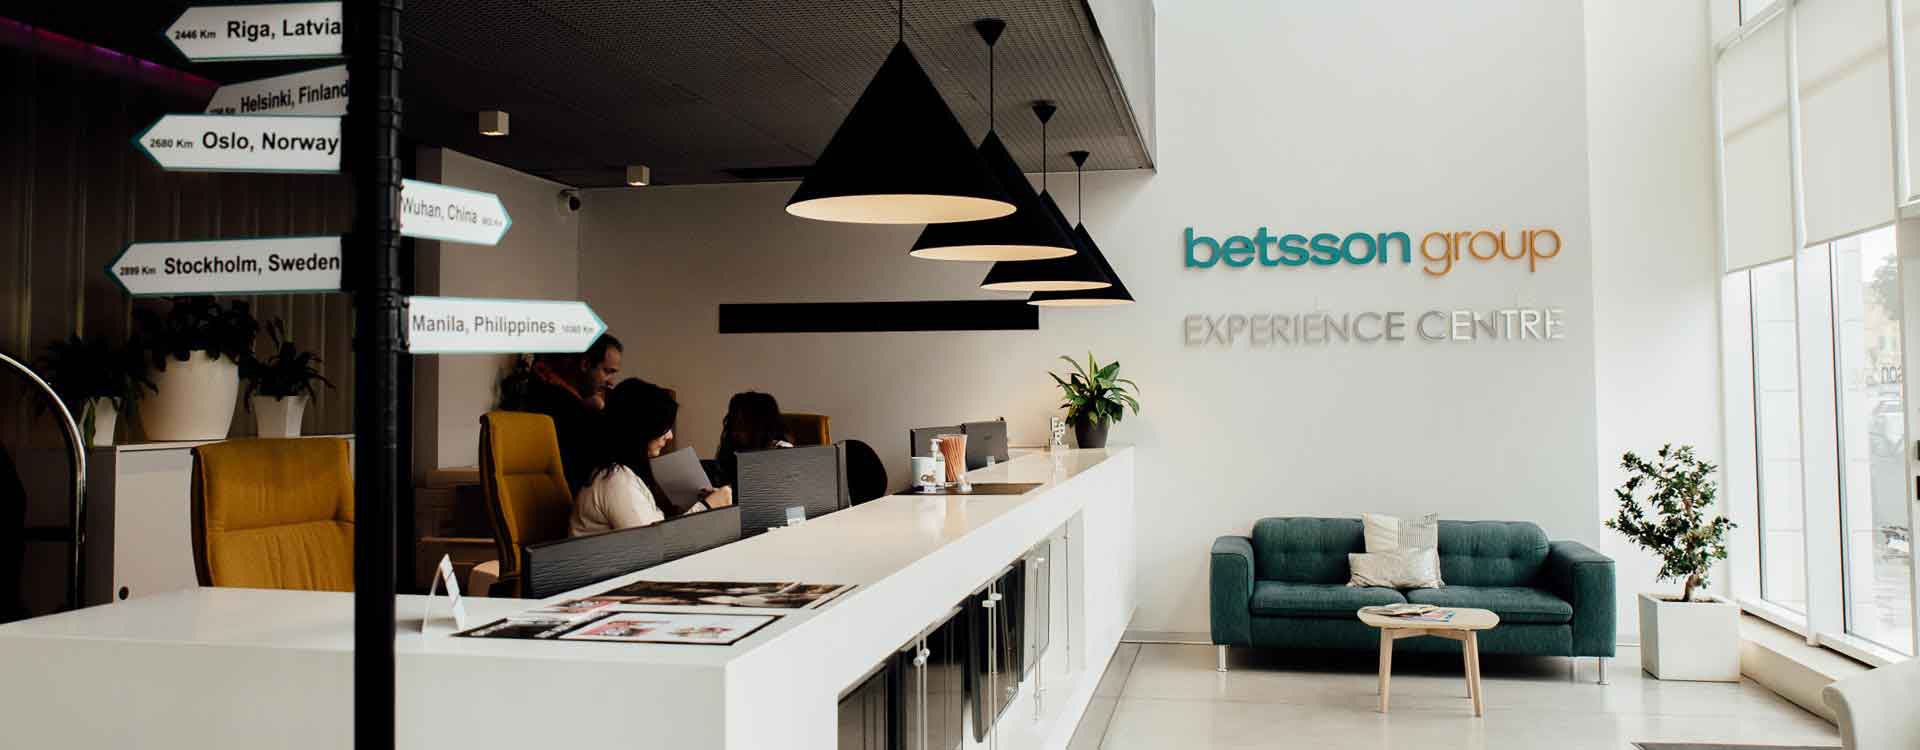 Betsson Group: Information Security Training for 1,500+ Employees